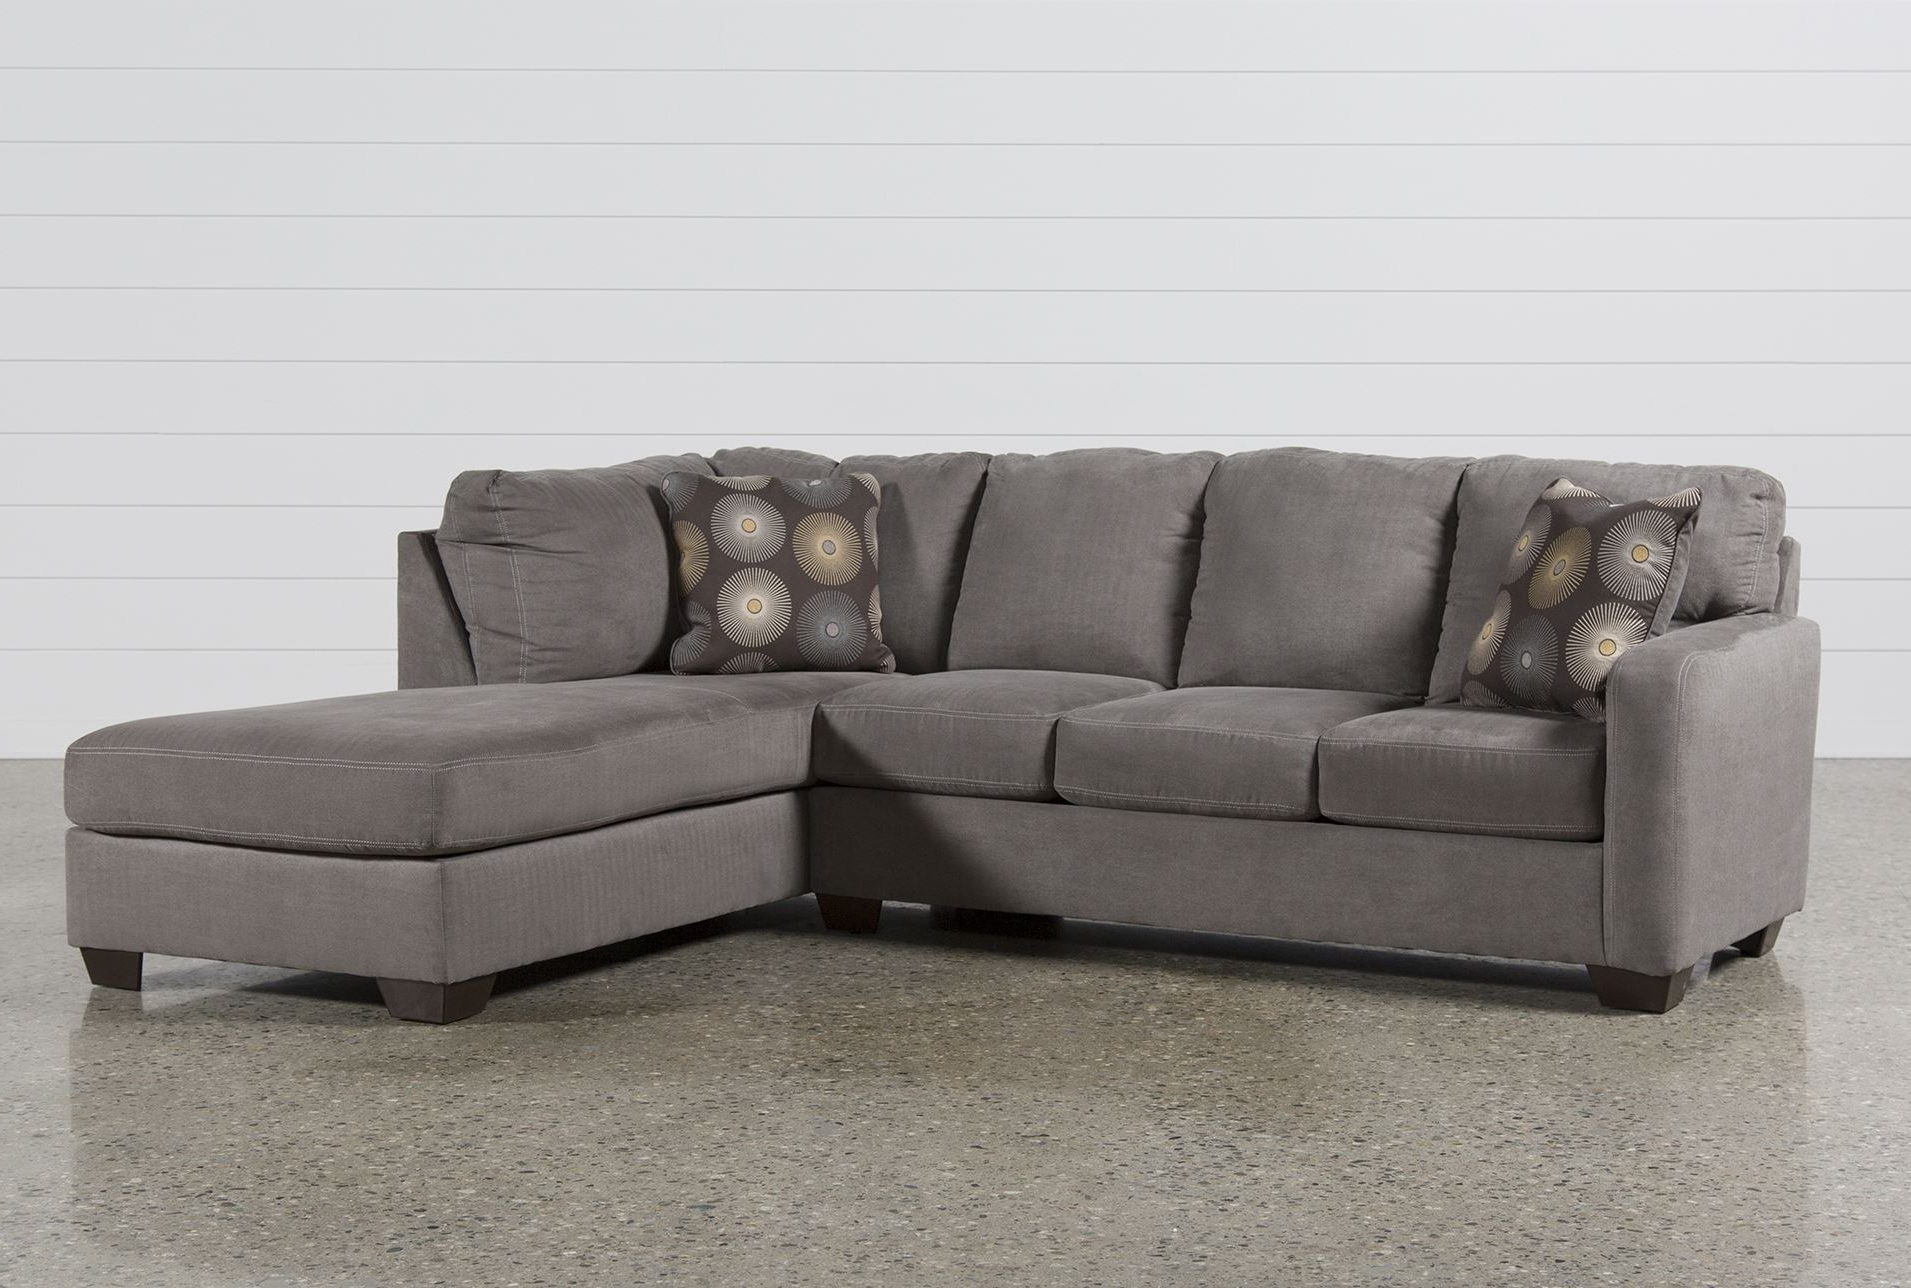 Favorite 4 Piece Sectional Sofas With Chaise Within Sofa ~ Comfy 2 Piece Sectional Sofa 107153 0 2 Piece Sectional (View 10 of 15)